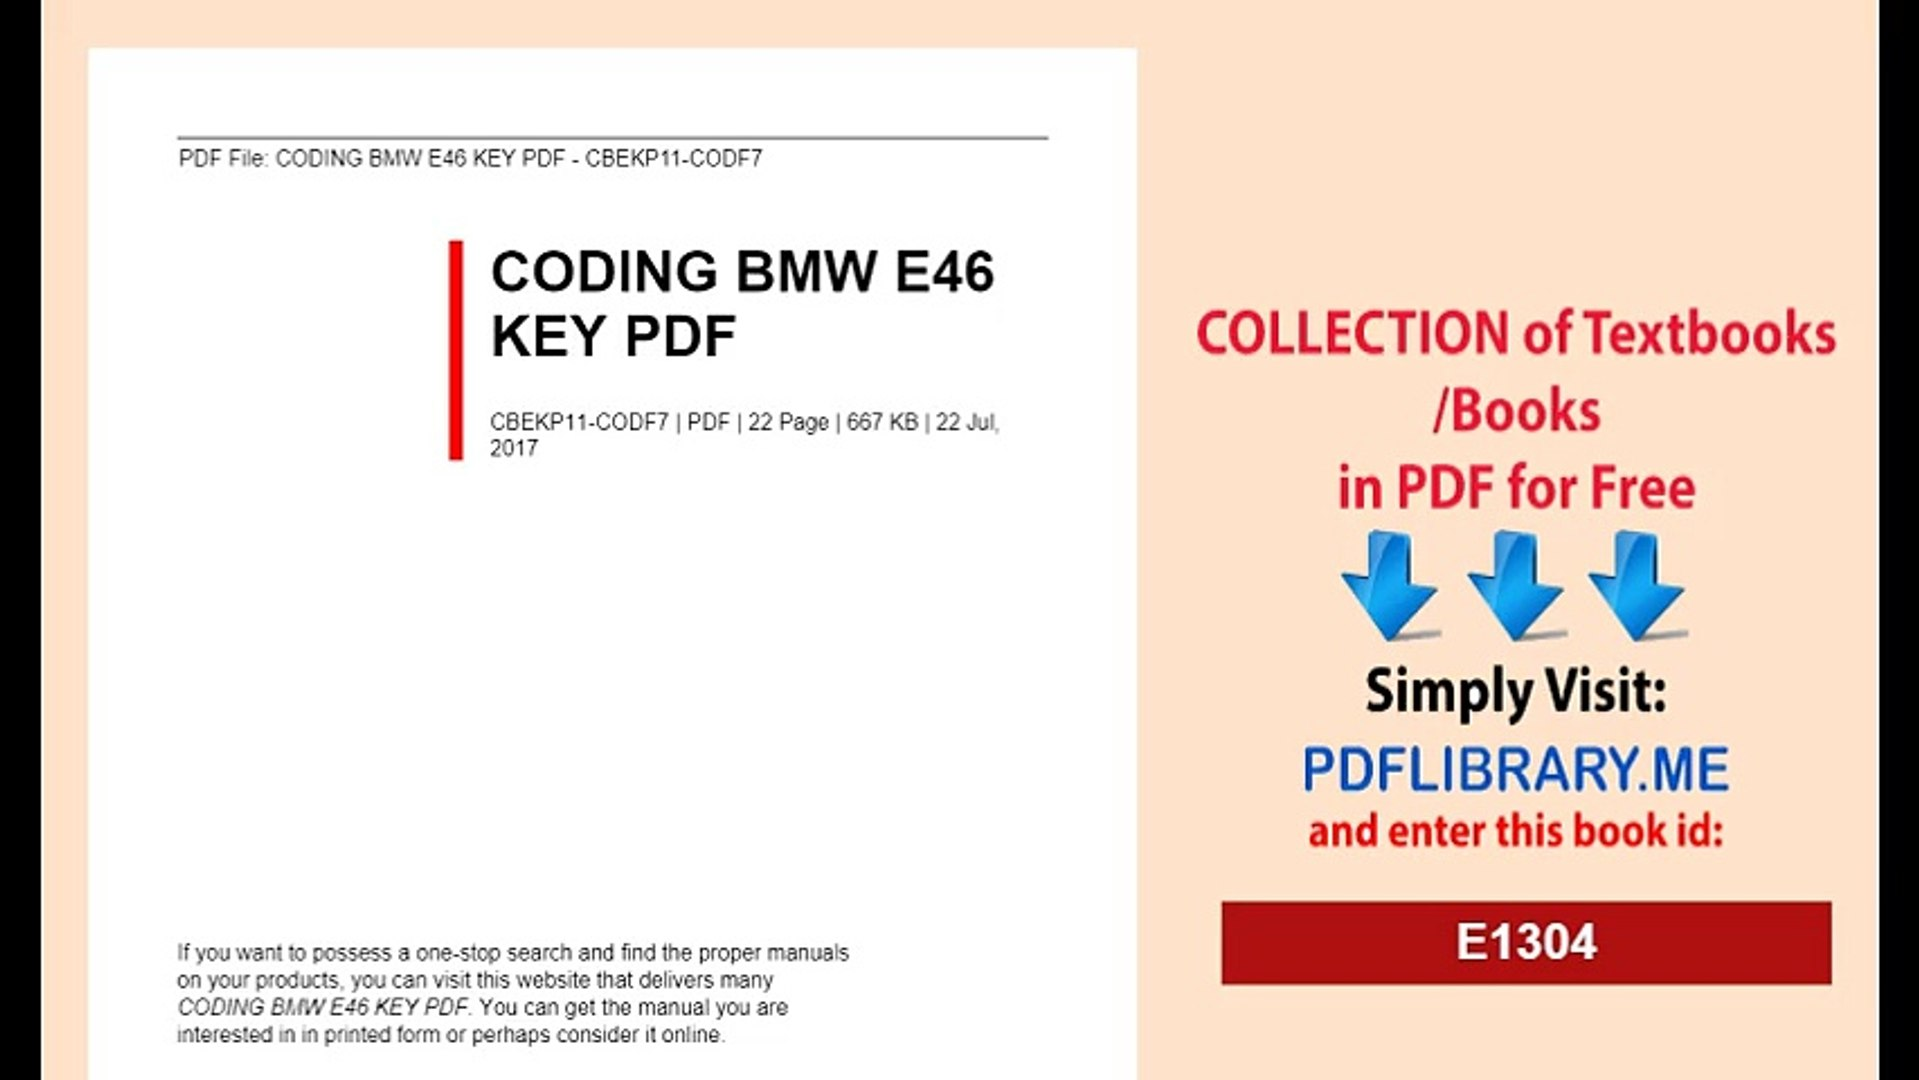 CODING BMW E46 KEY new